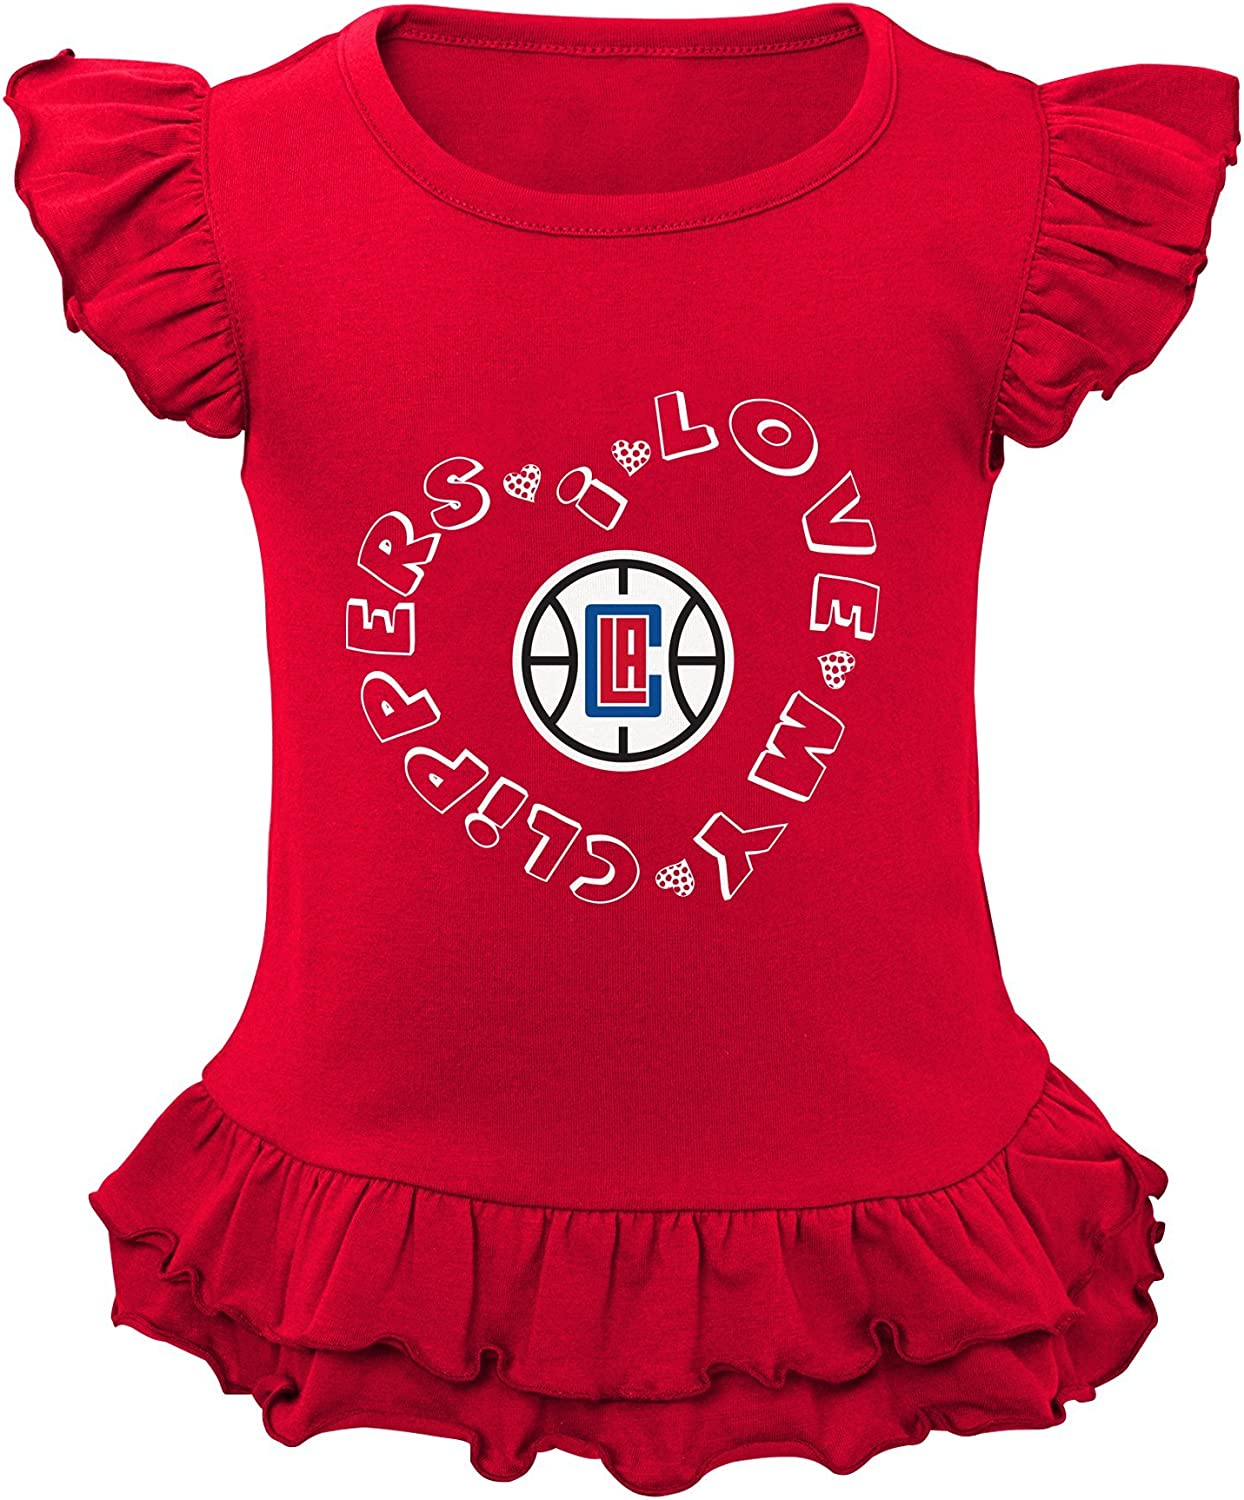 NBA Toddler Team Love Ruffle Shirt and Pant Set Los Angeles Clippers-Red-4T